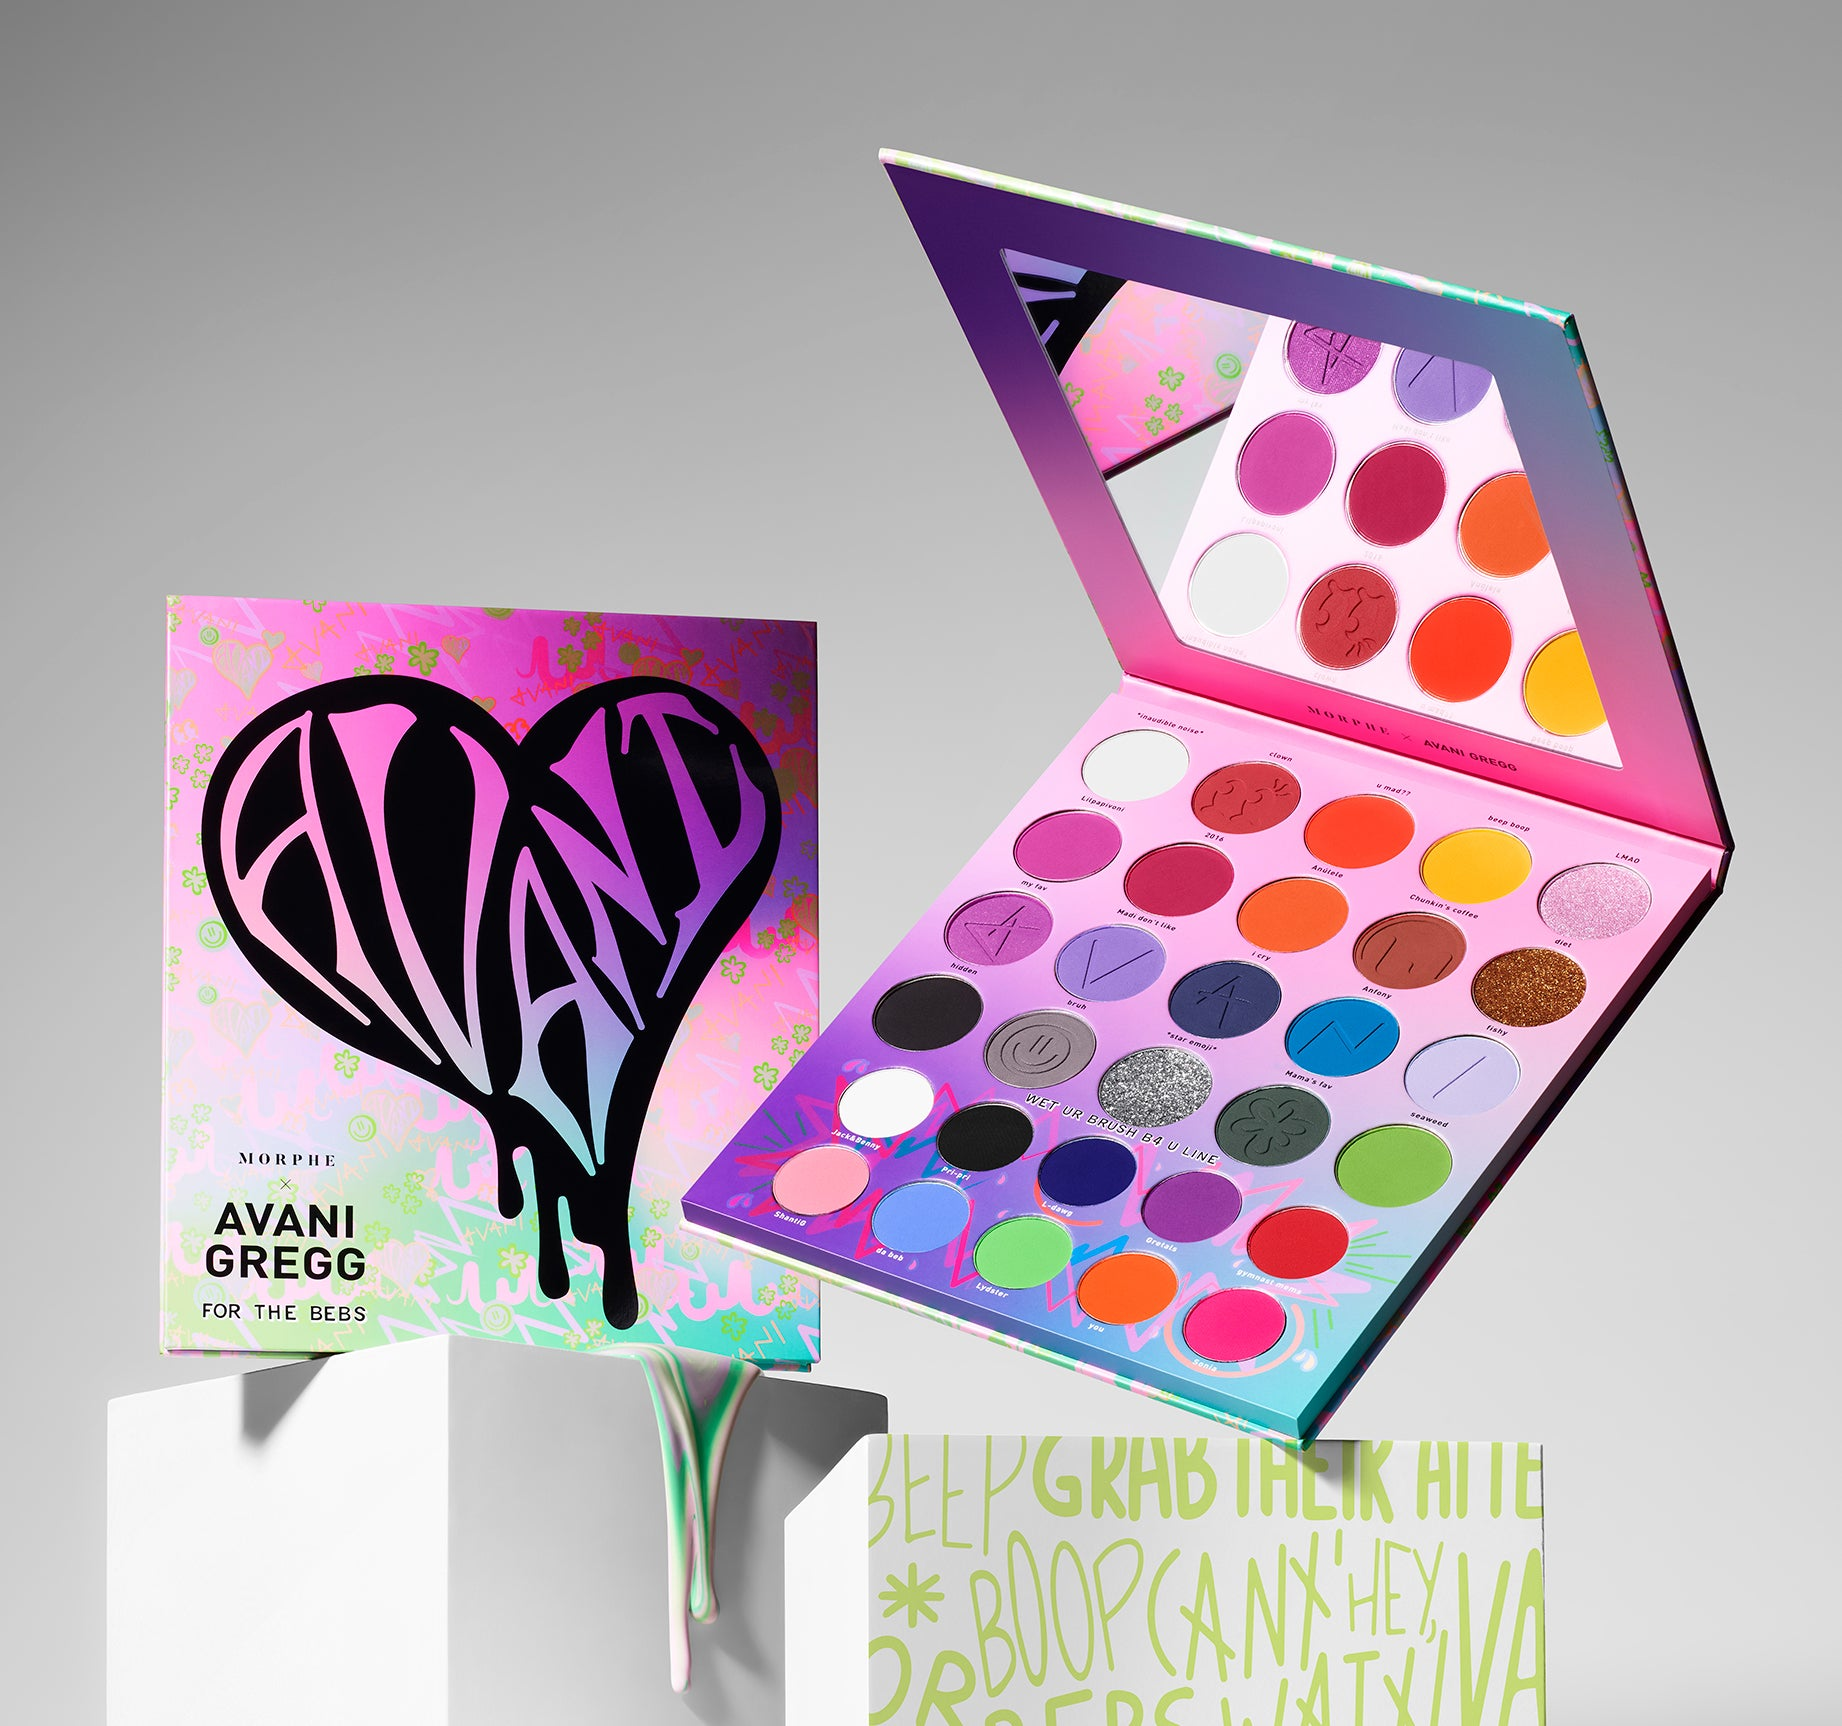 MORPHE X AVANI GREGG FOR THE BEBS ARTISTRY PALETTE, view larger image